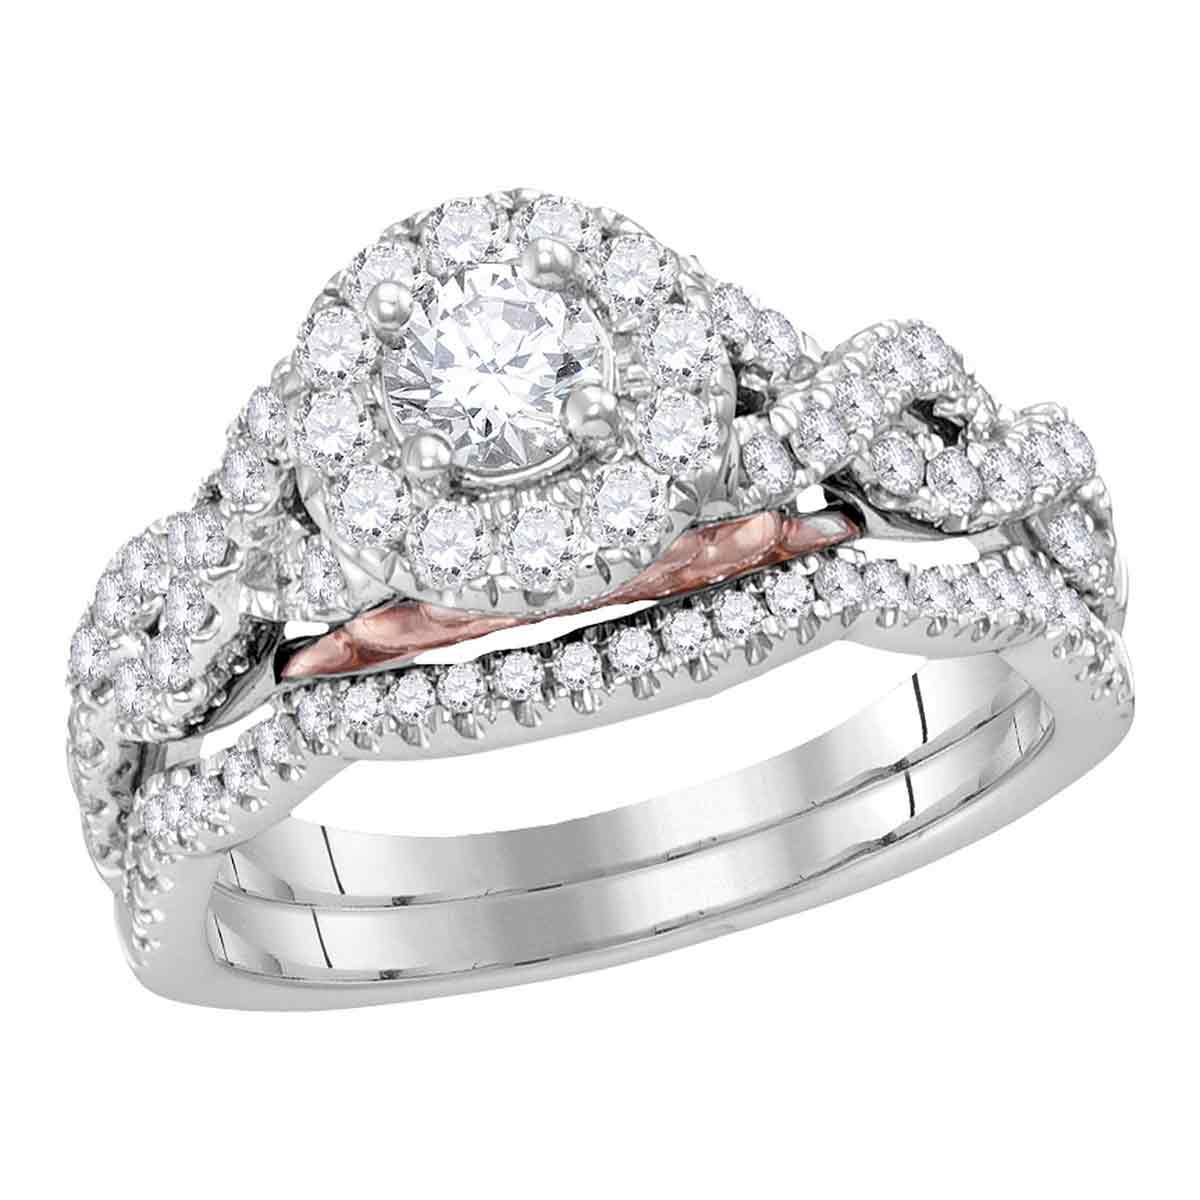 It is an image of female wedding rings white gold